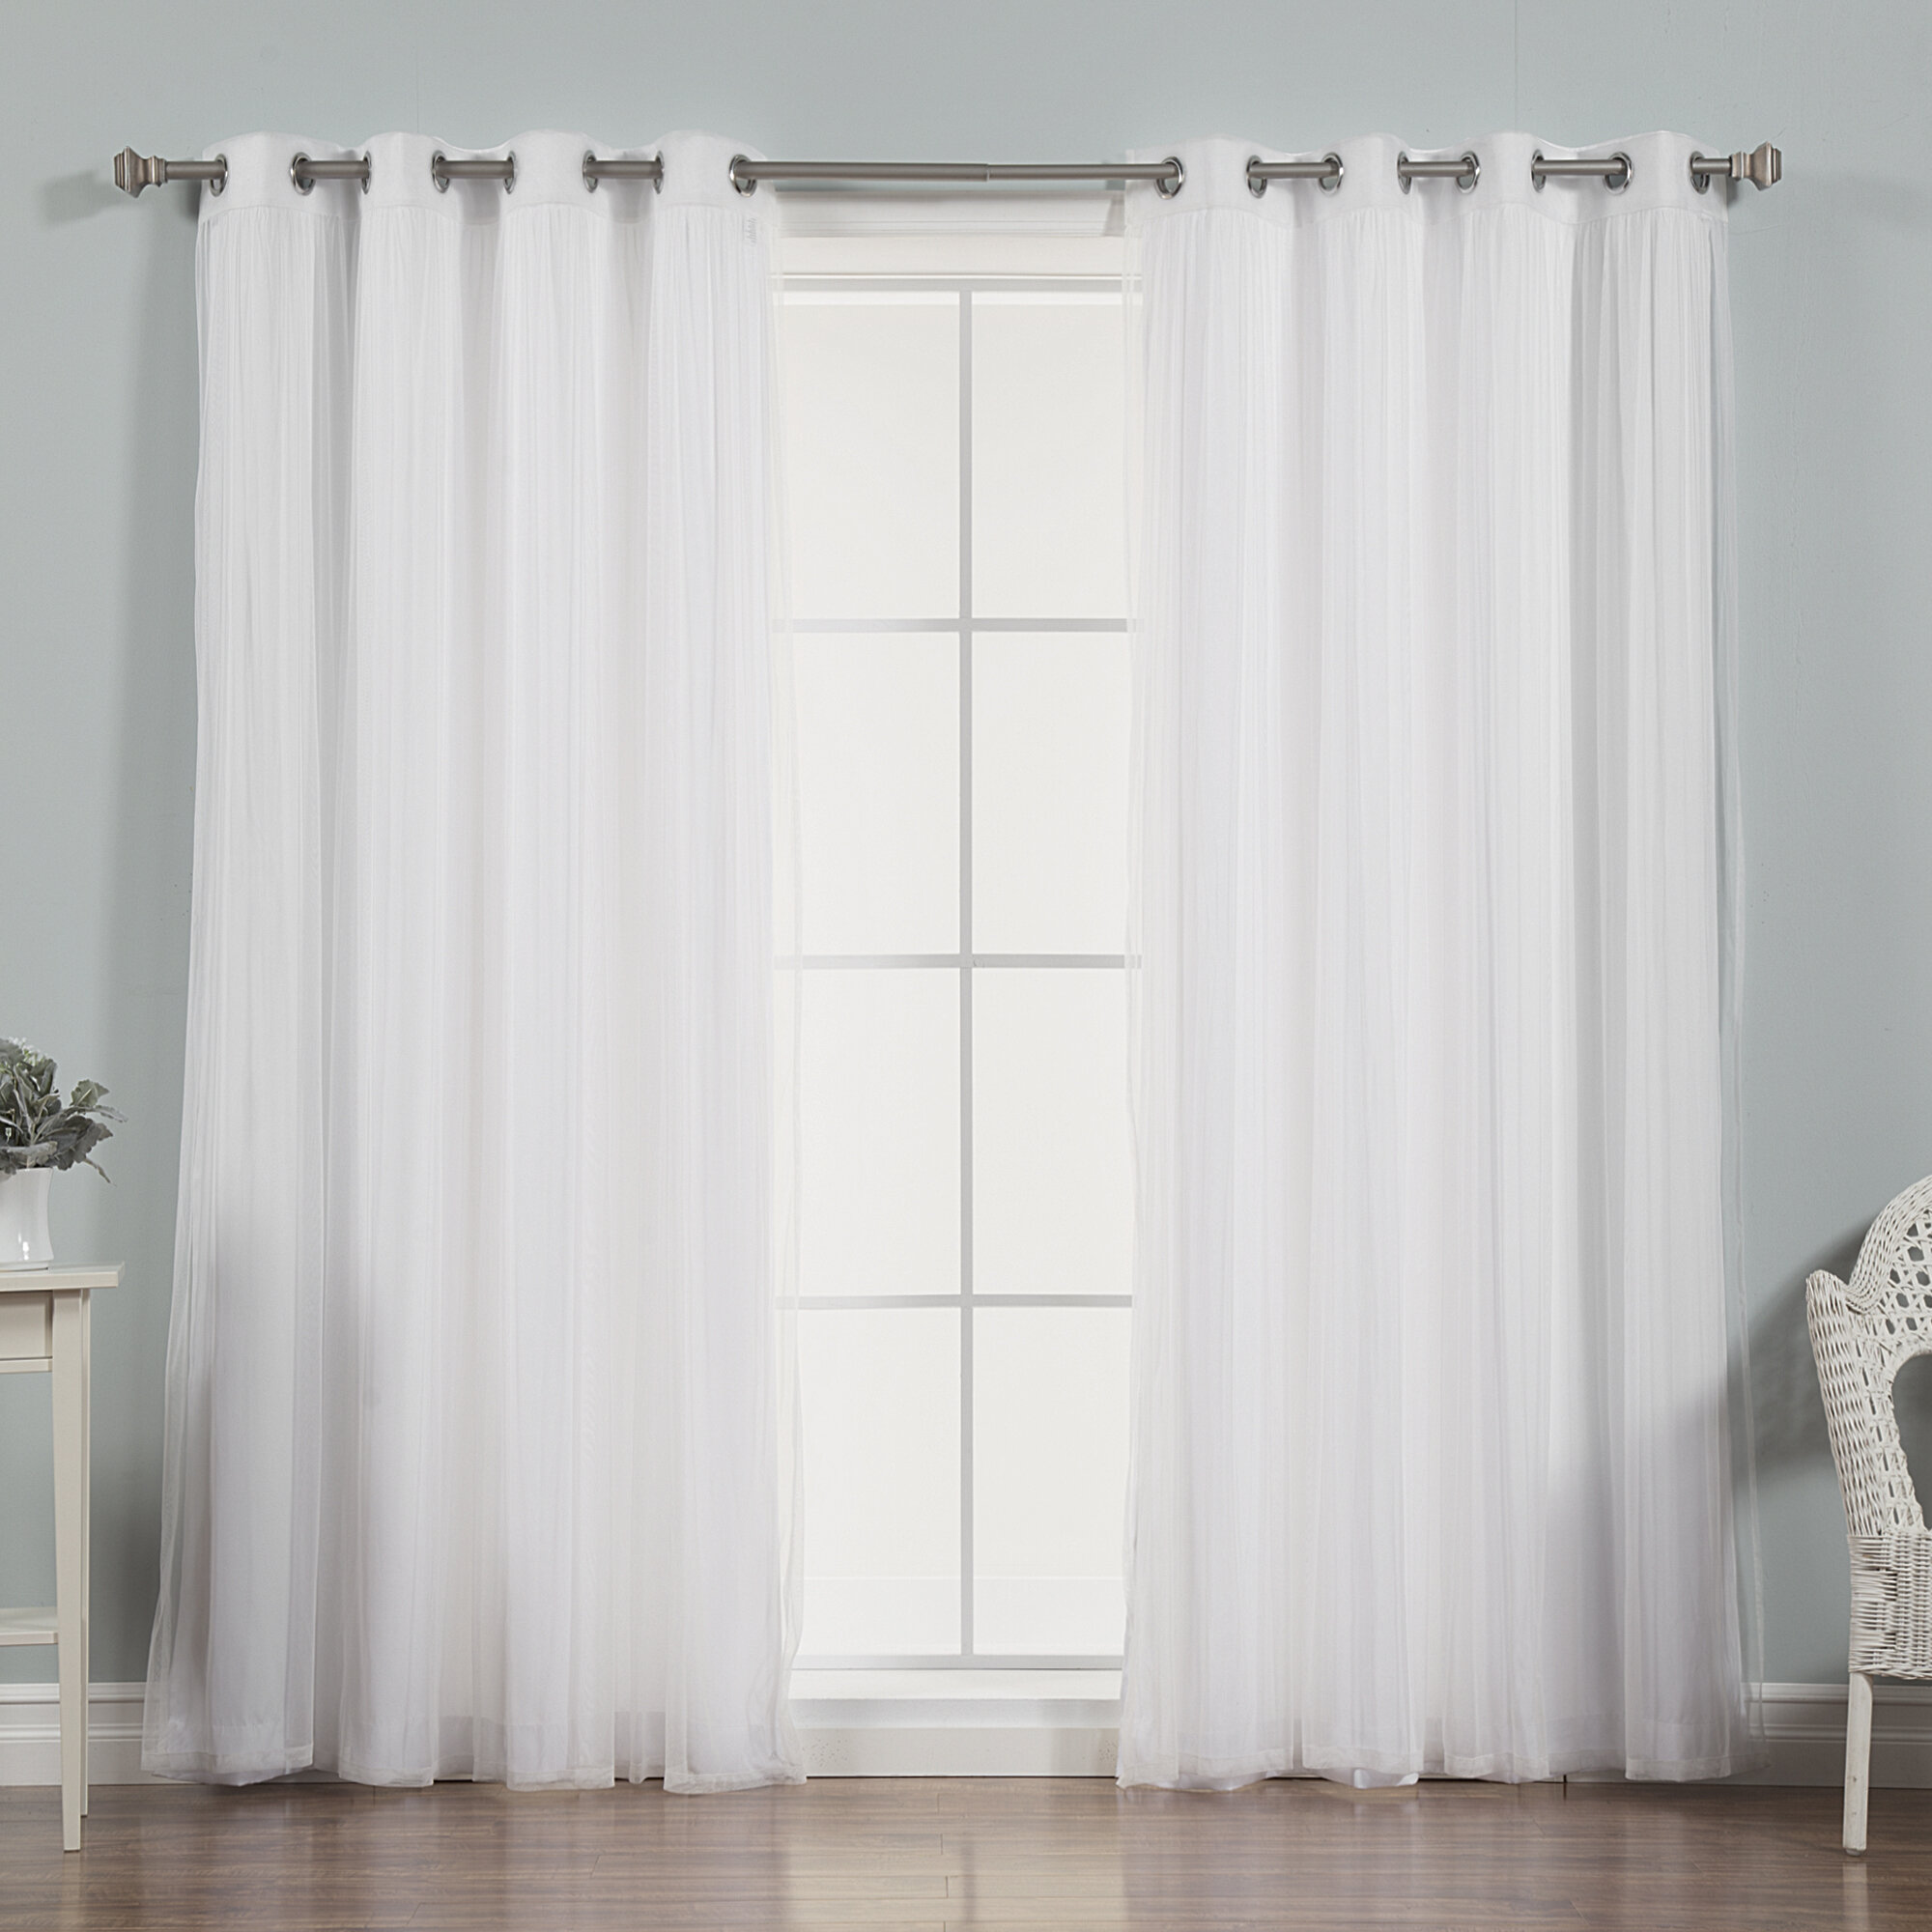 Best Home Fashion Inc Mix And Match Tulle Semi Sheer Grommet Curtain Panels Reviews Wayfair